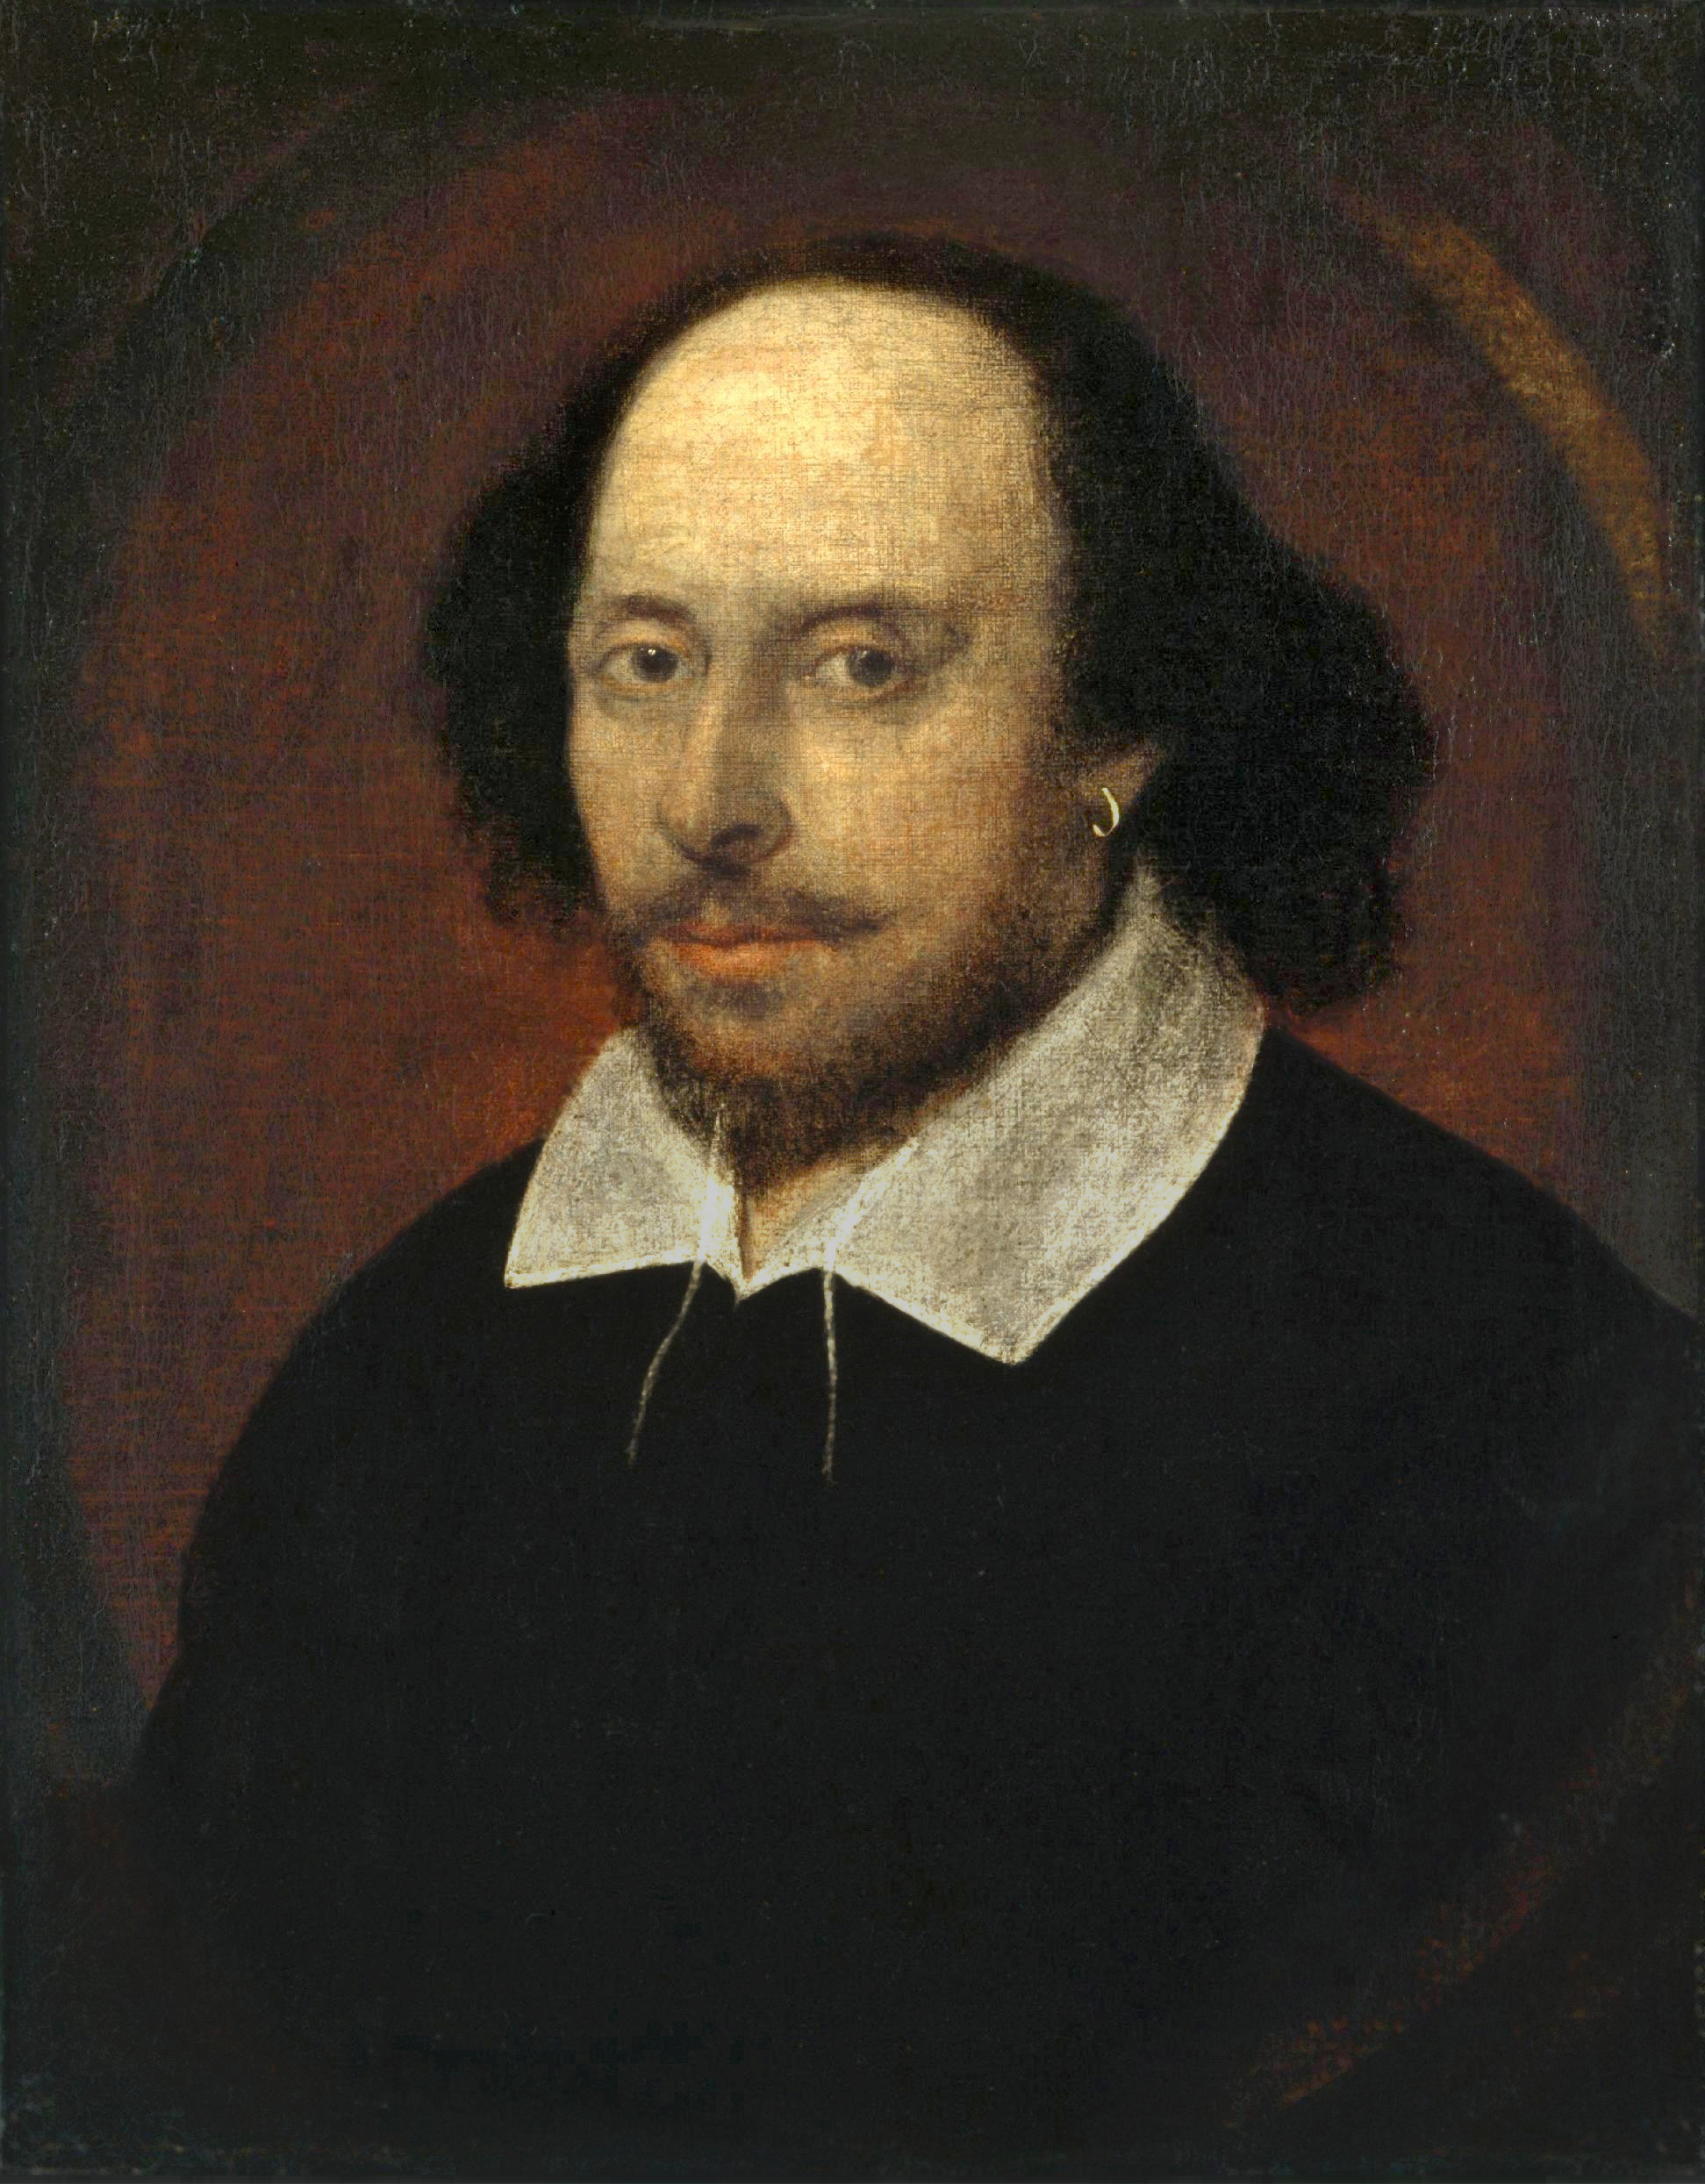 file shakespeare jpg  file shakespeare jpg